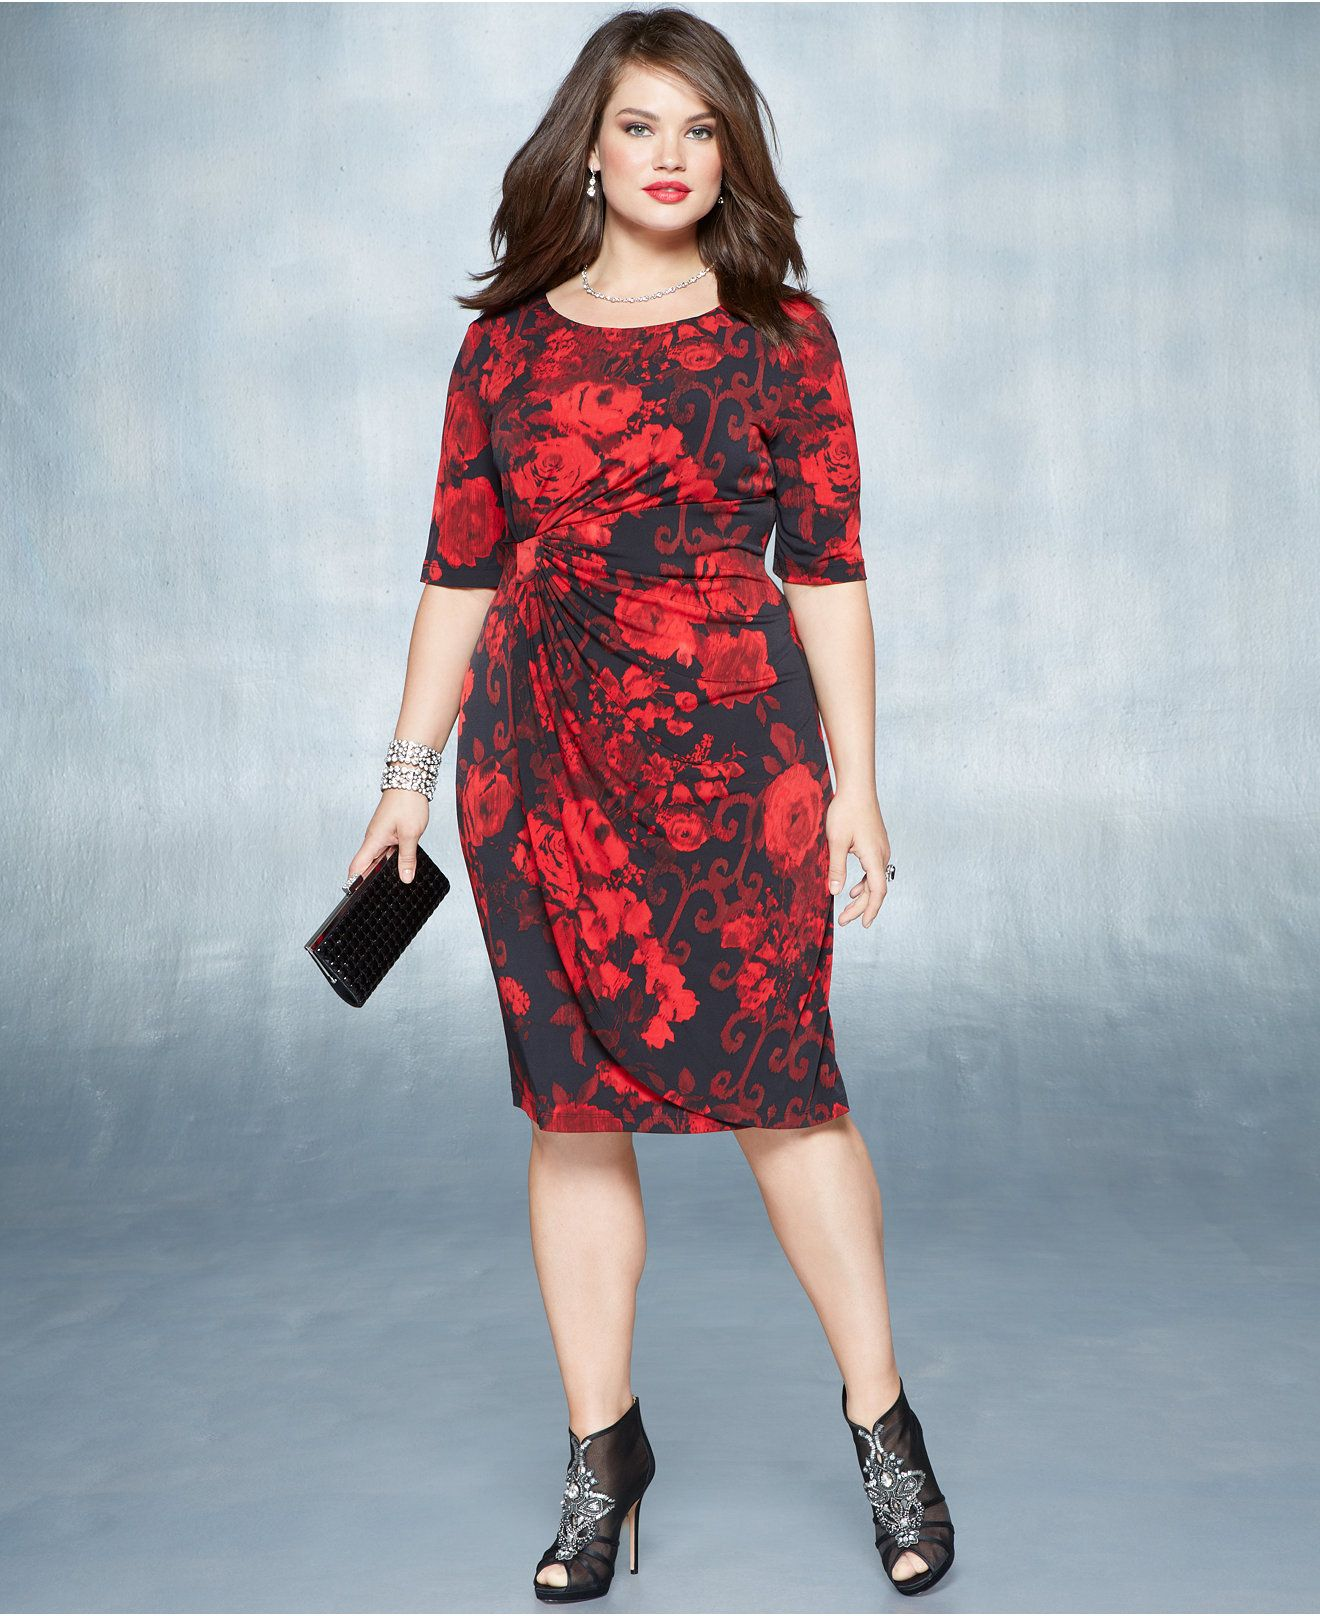 96a35544e92 Holiday 2014 Plus Size Red Hot Floral-Print Fitted Dress - Red Hot - Plus  Sizes - Macy s